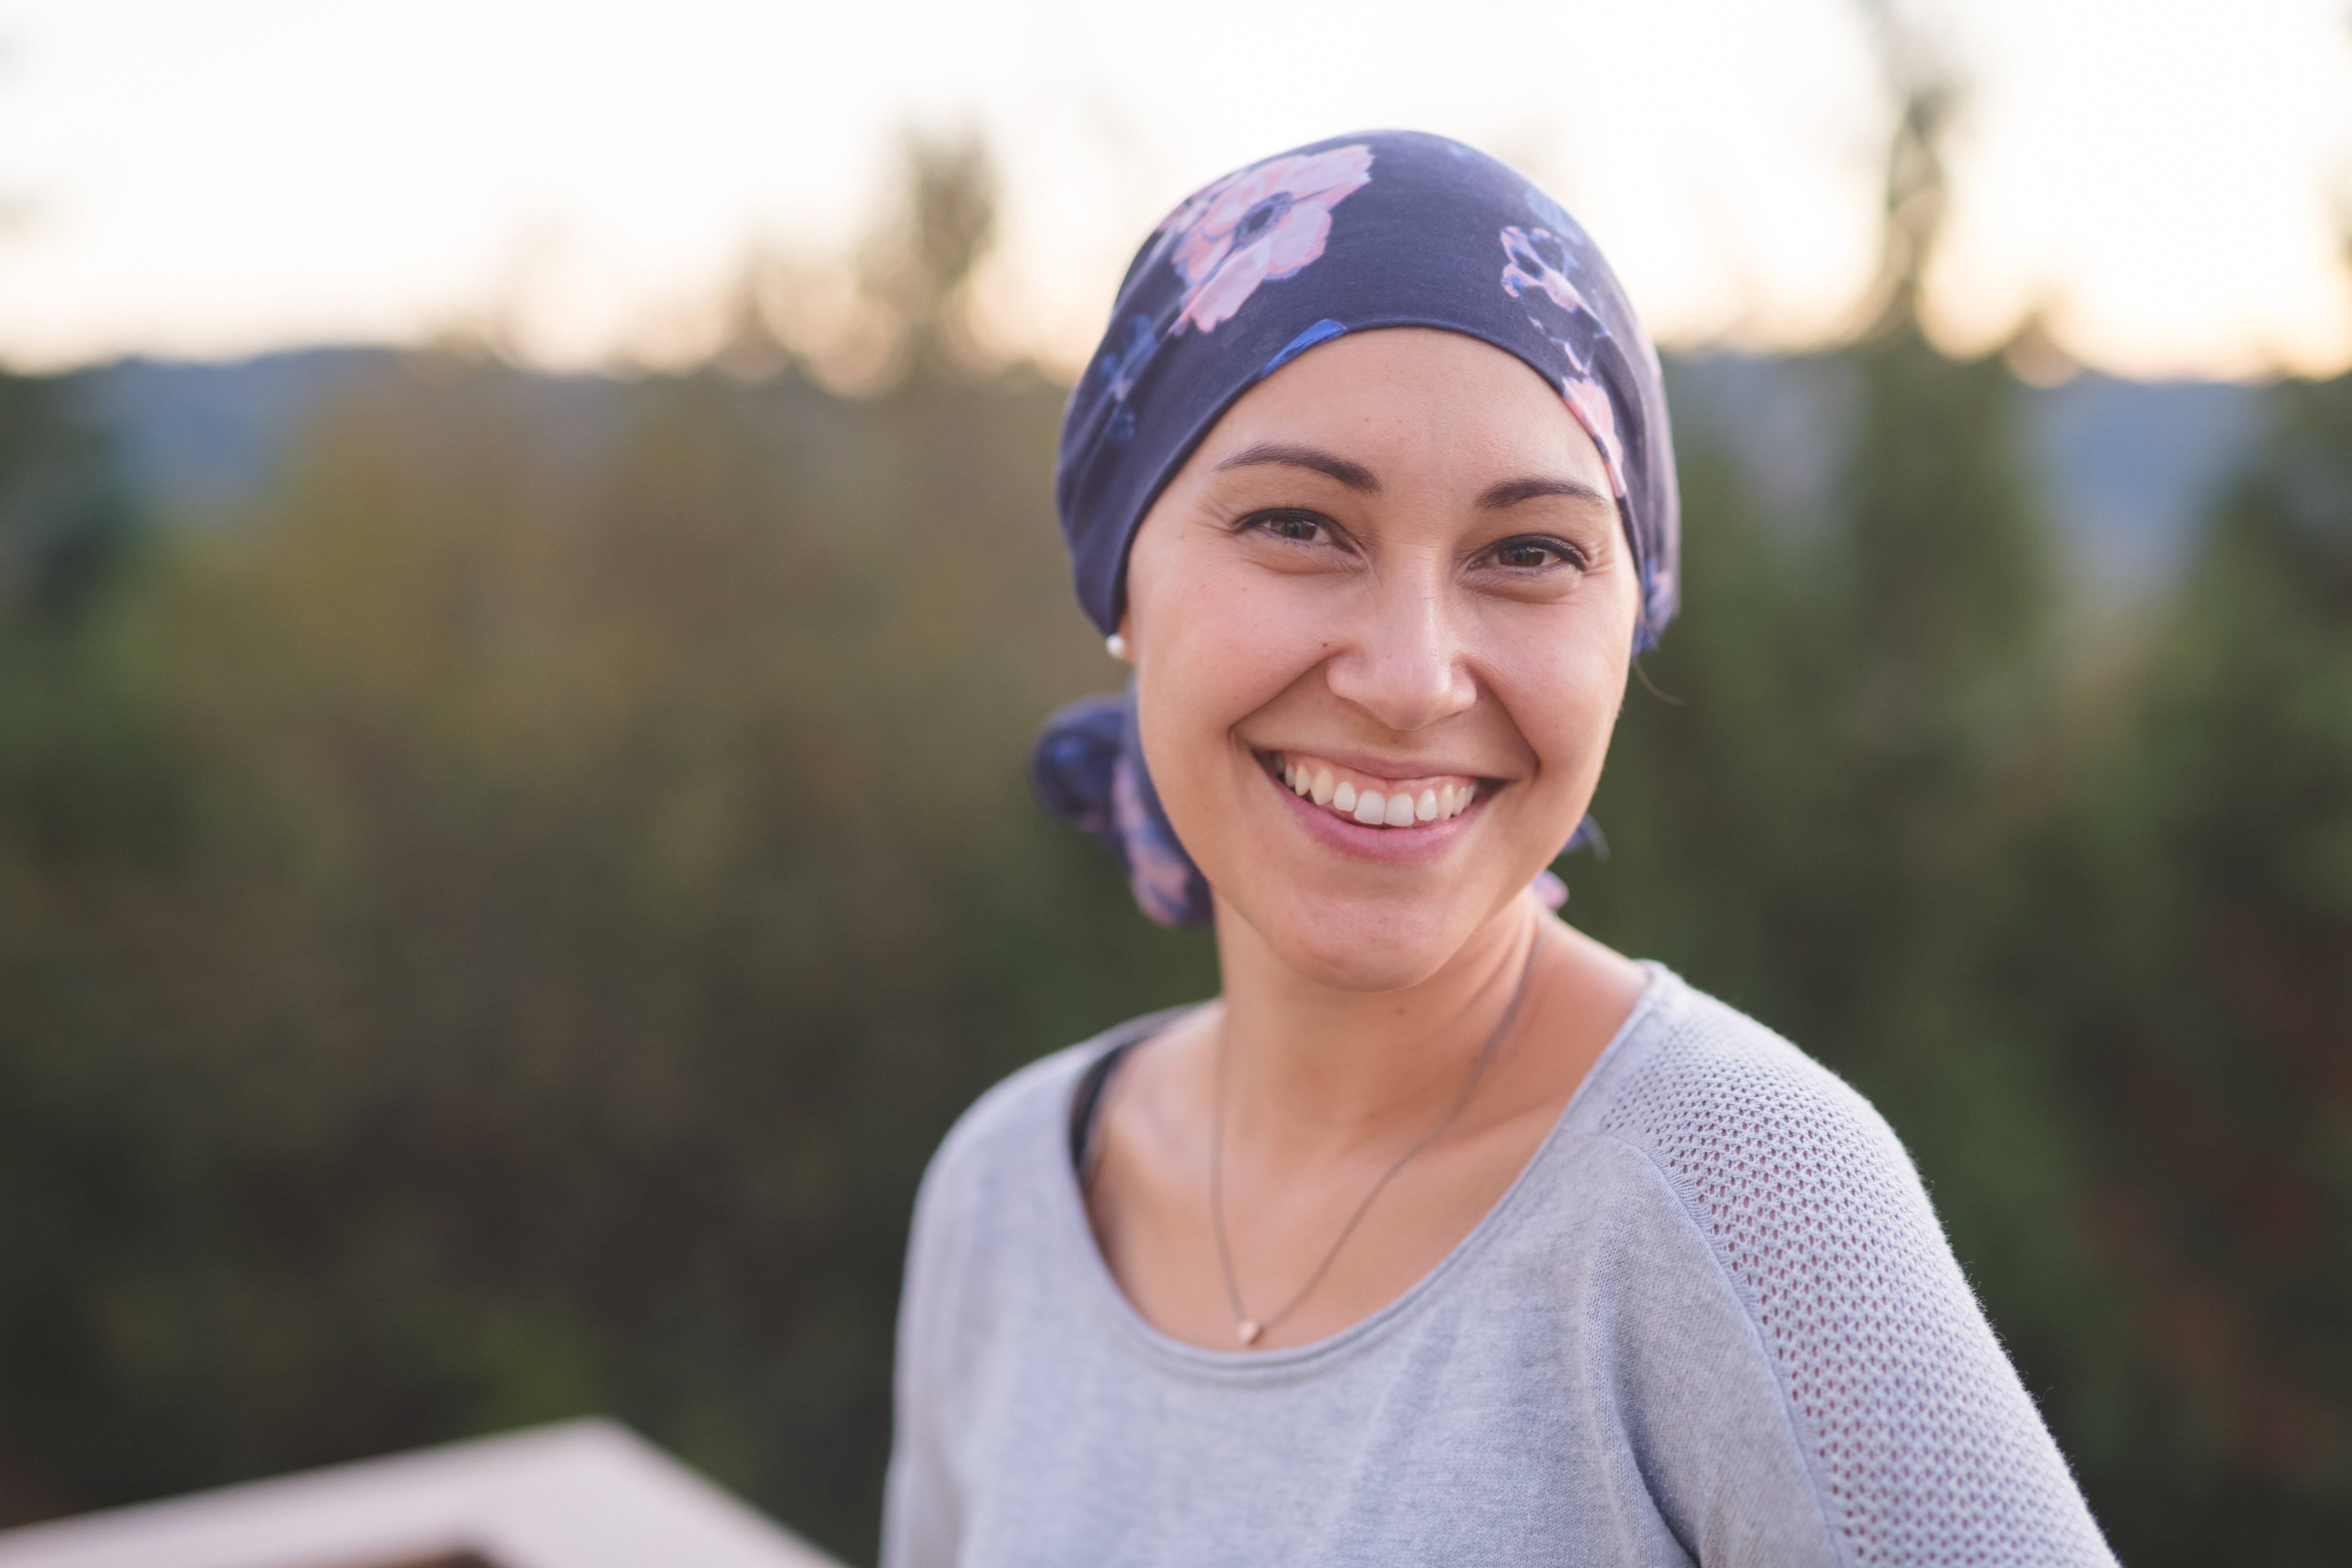 More Than Skin Deep: How Cancer Impacts Body, Mind and Spirit